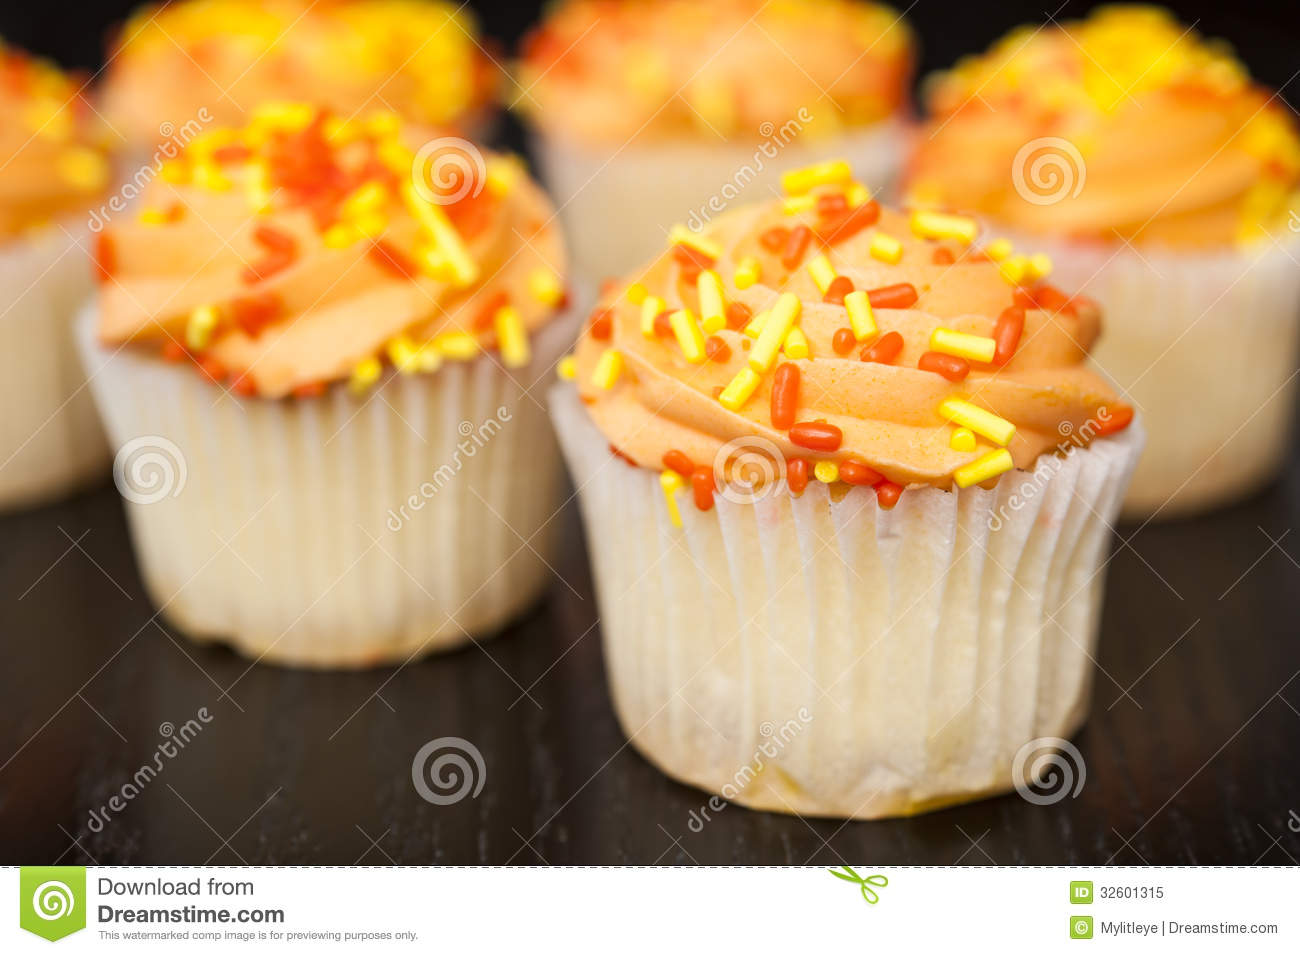 Cupcake with orange icing and yellow and orange sprinkles.